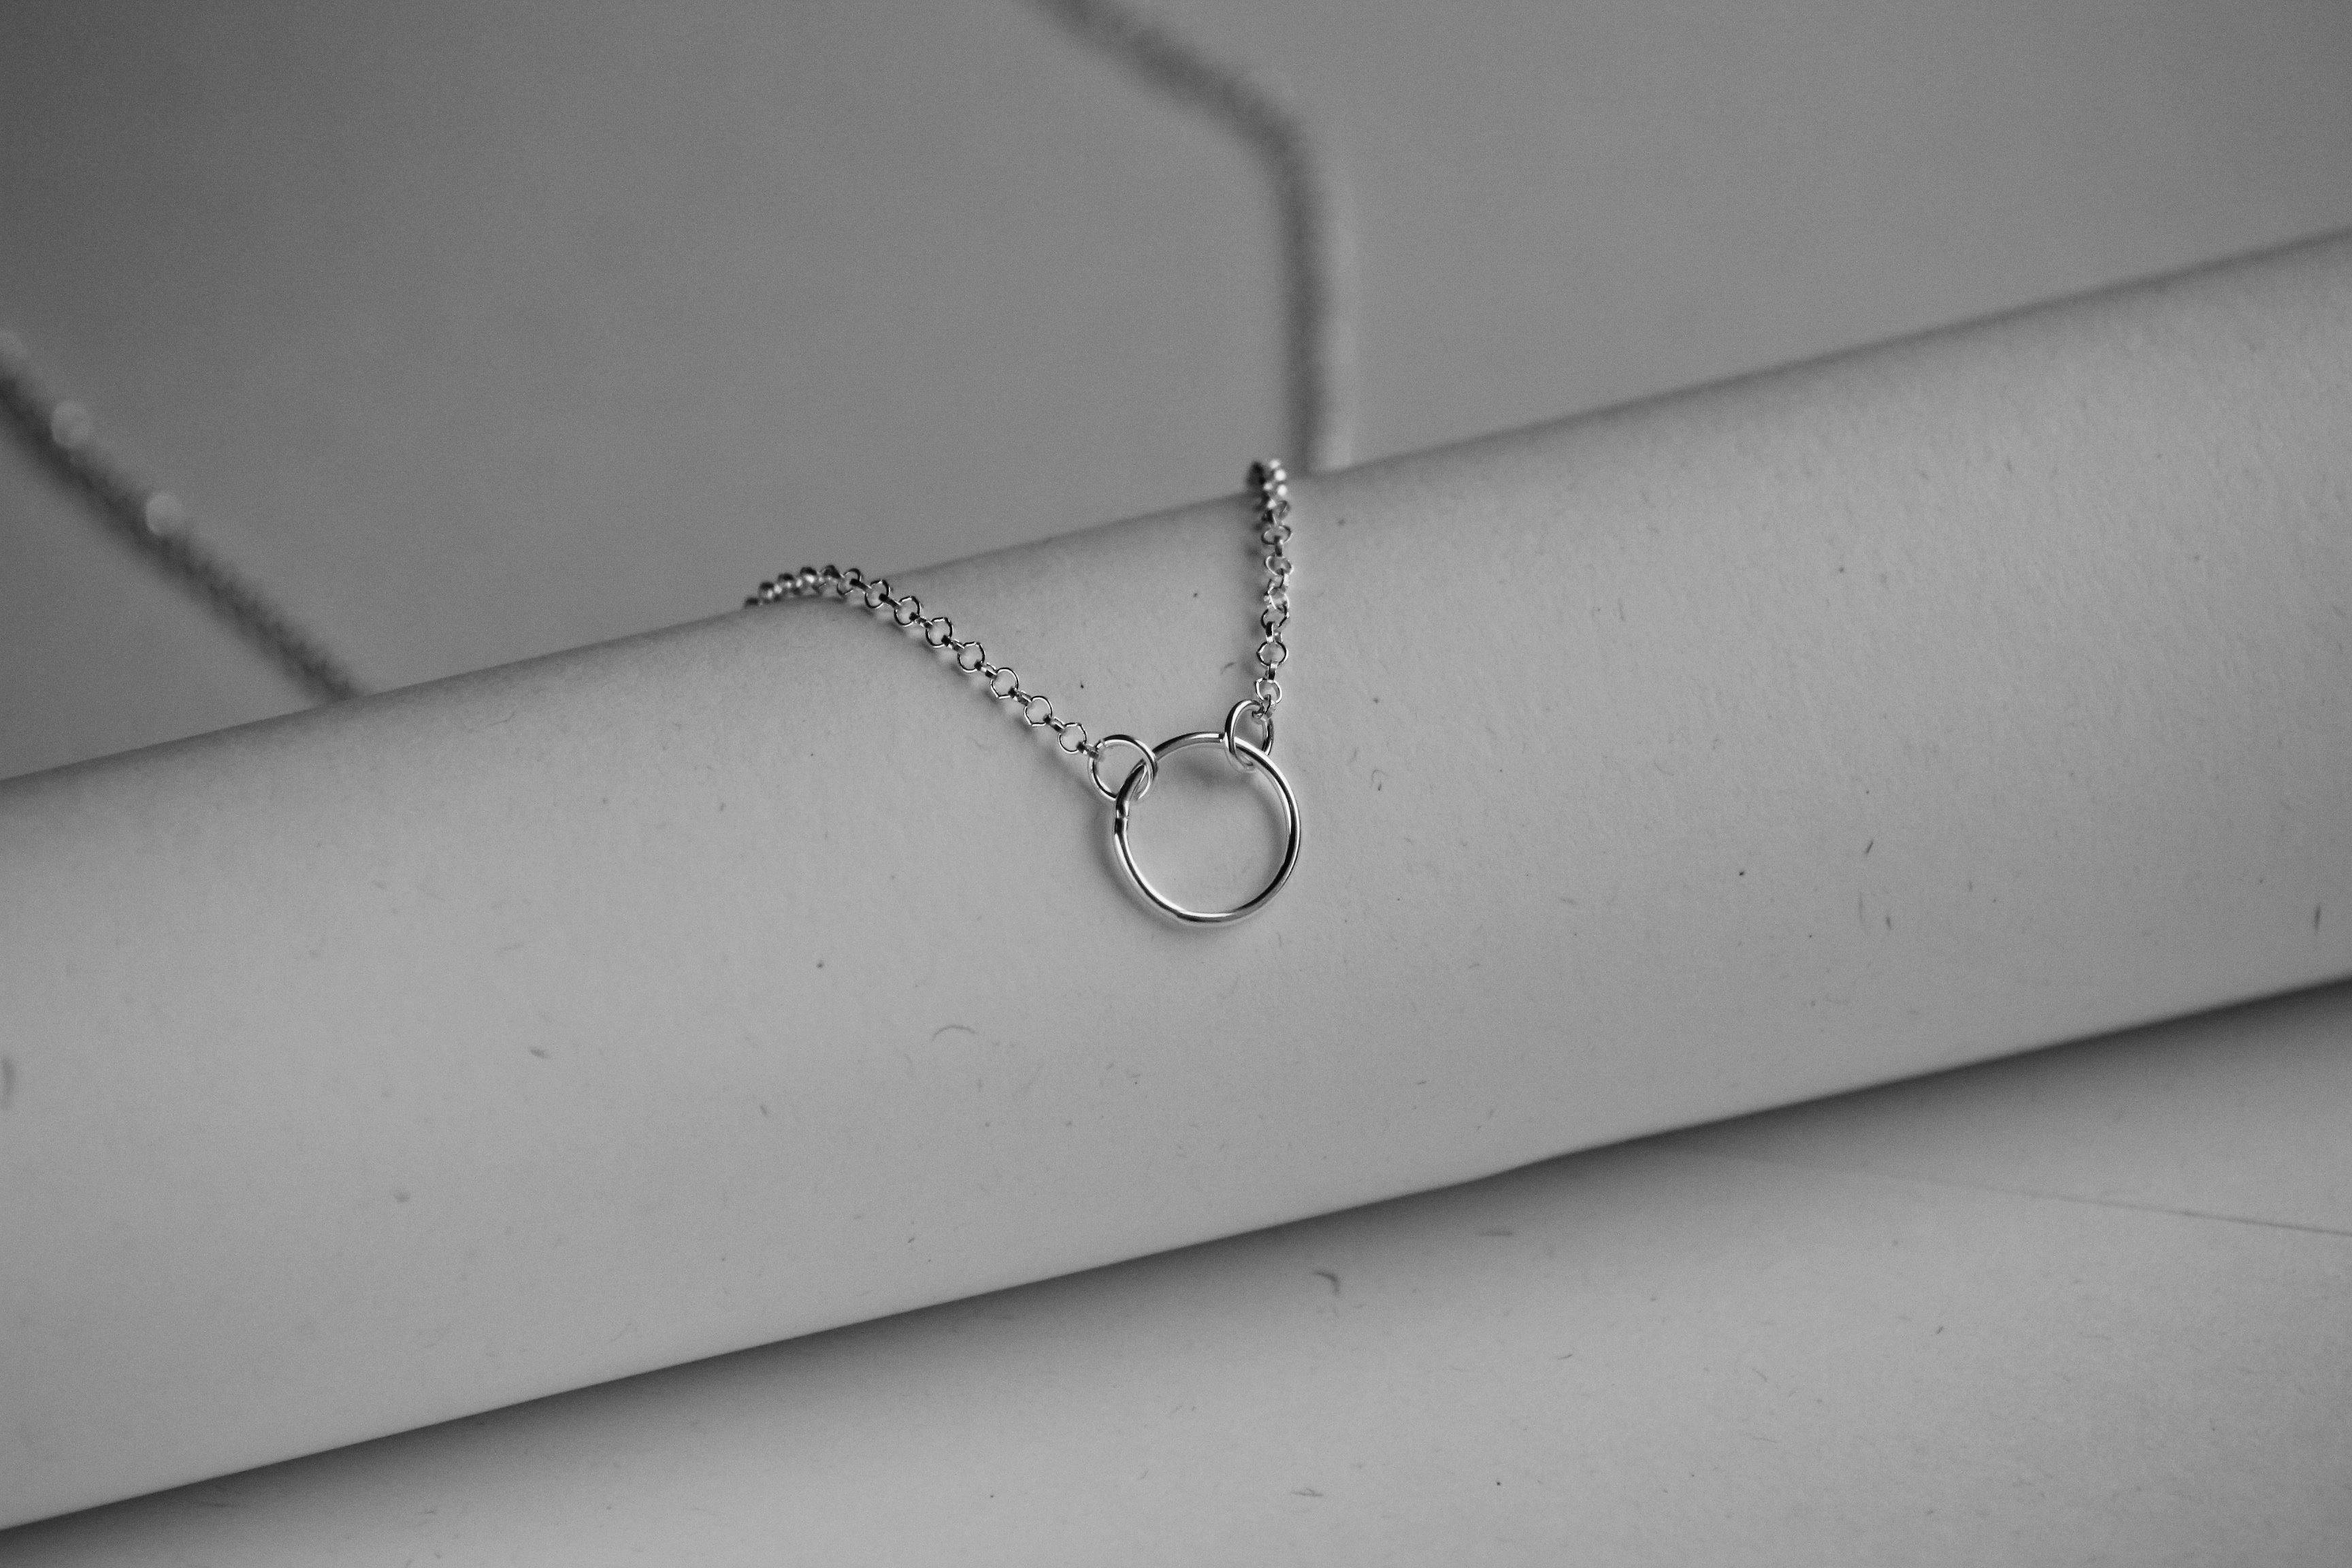 Women's Sterling Silver Necklace - The Jewellery Hut UK